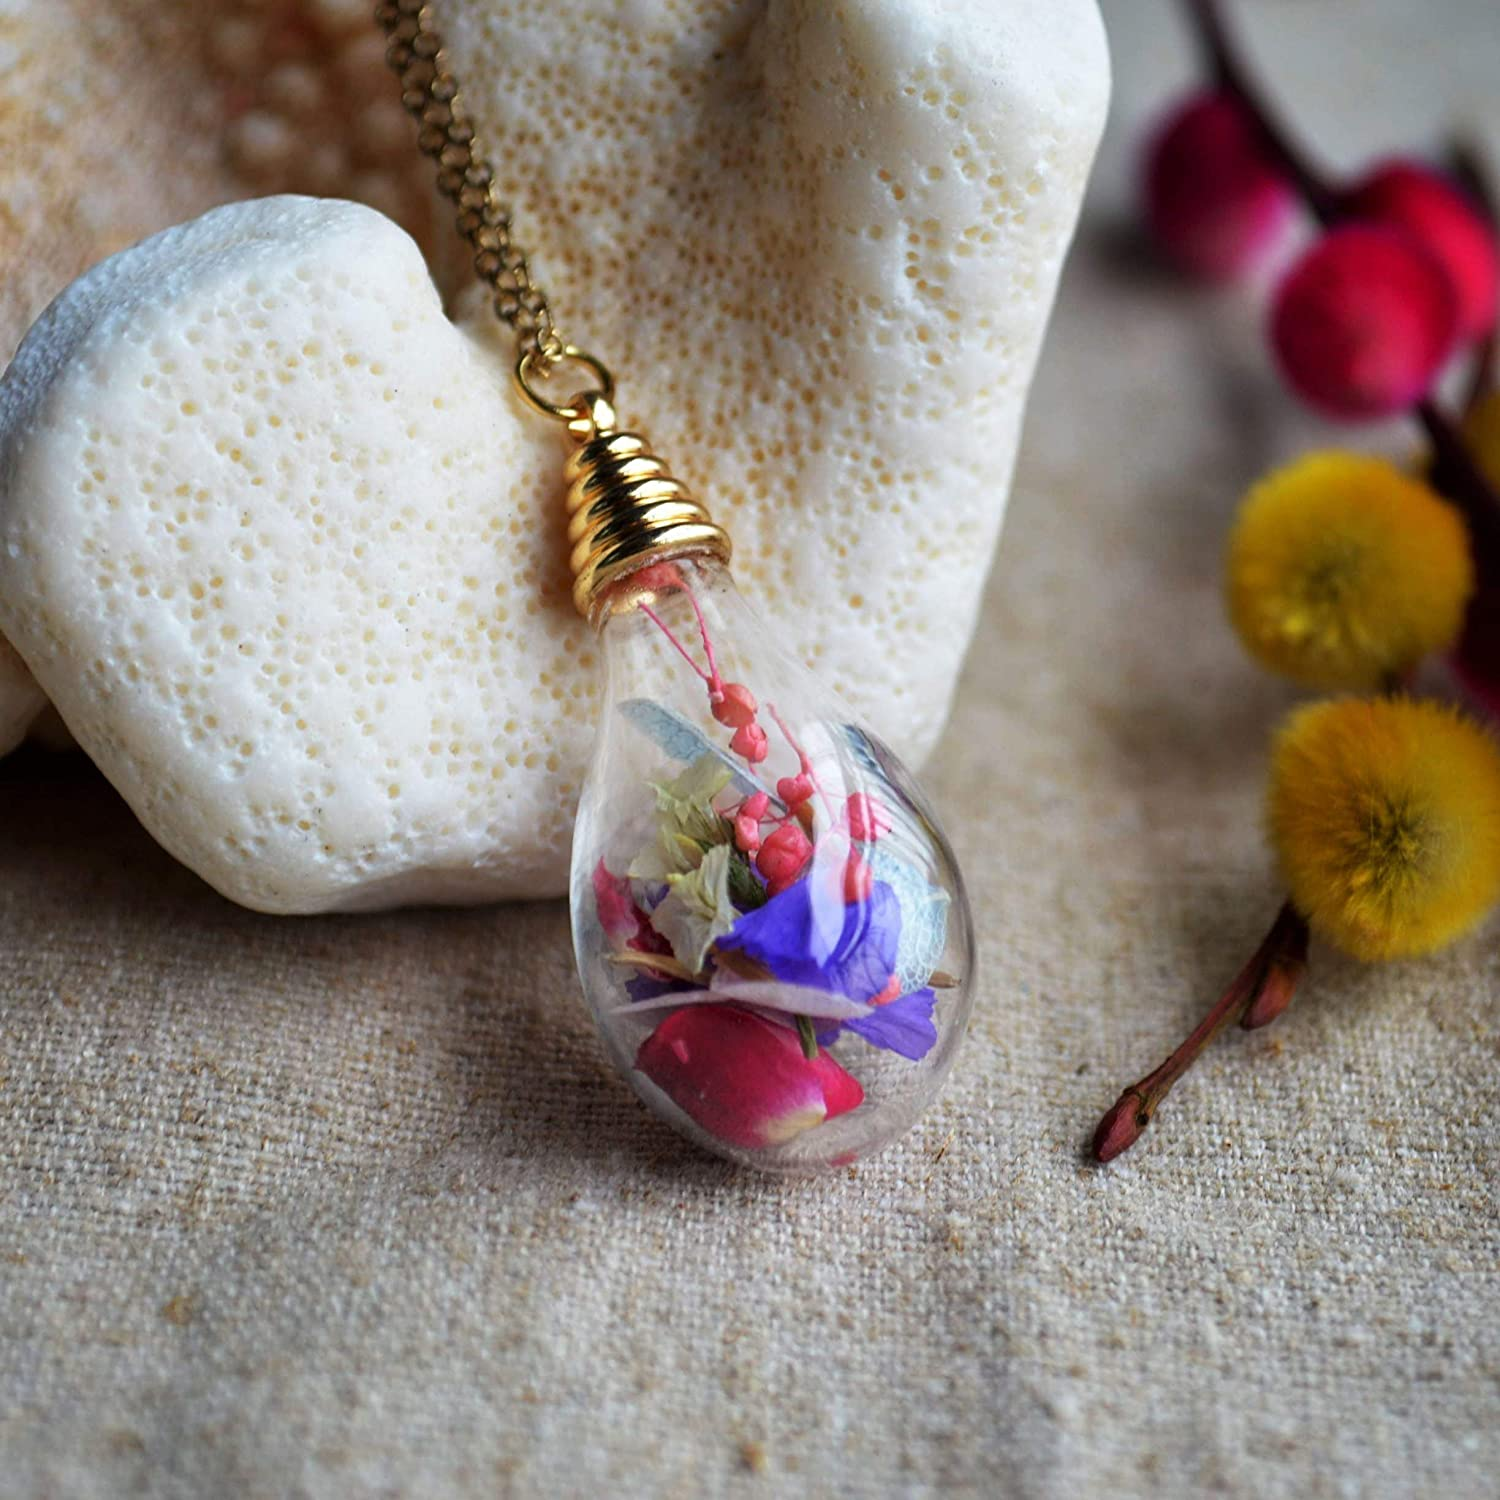 Mixed Real Flower Babysbreath Roses Forgetmenot Waterdrop Glass Pendant 18k Gold Plated Chain Necklace